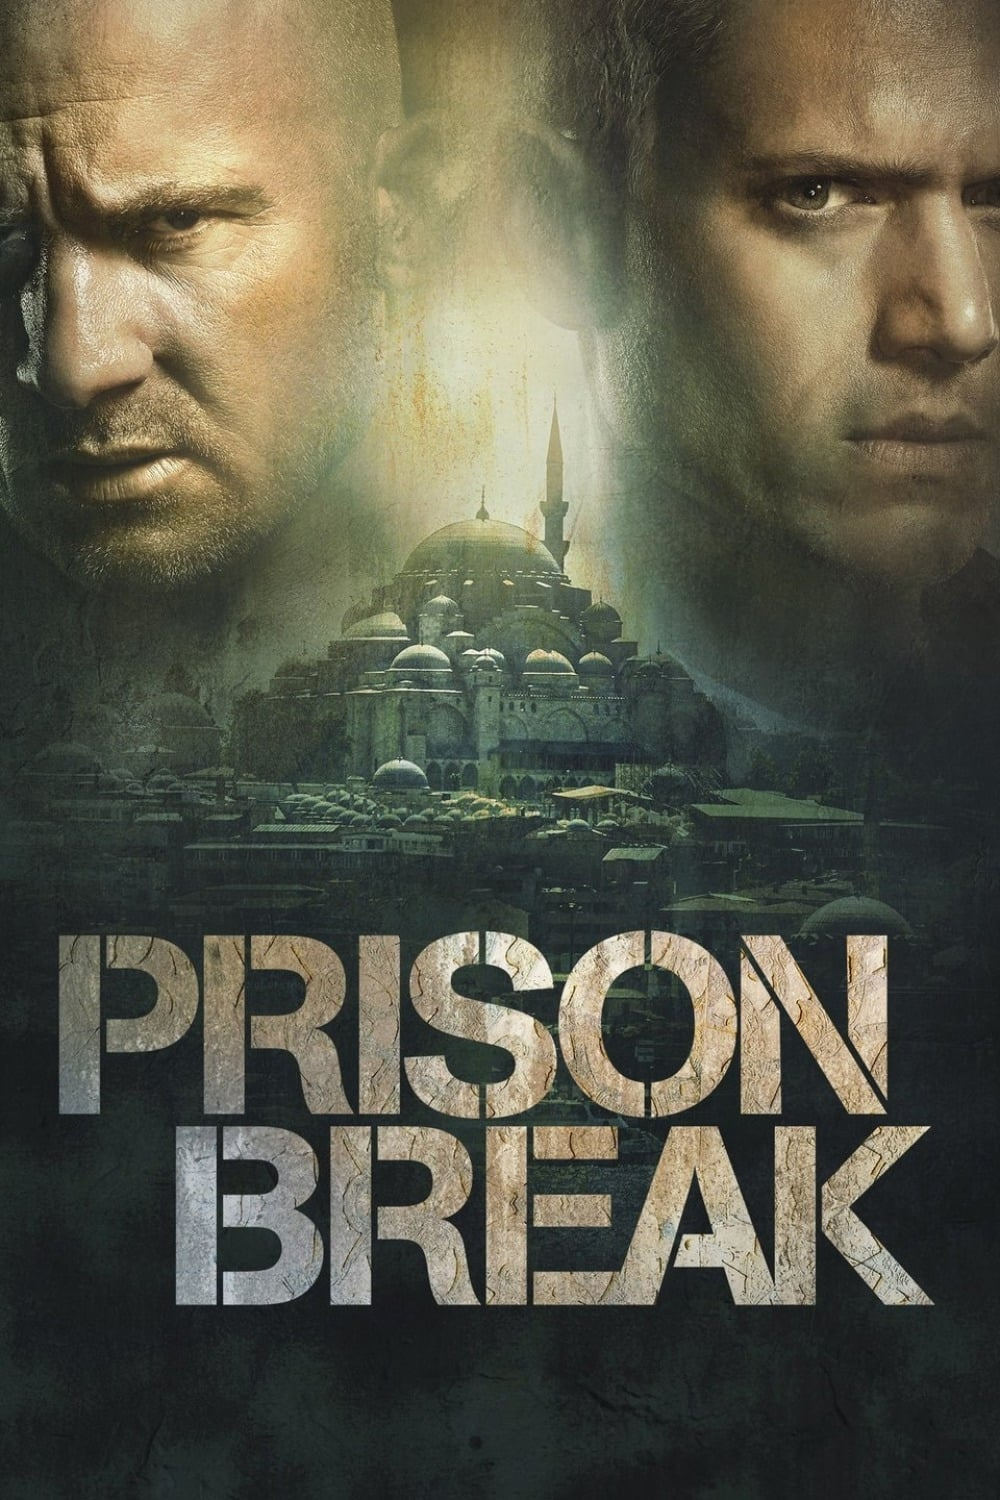 Prison Break – Todas as Temporadas Dublado / Legendado (2009)